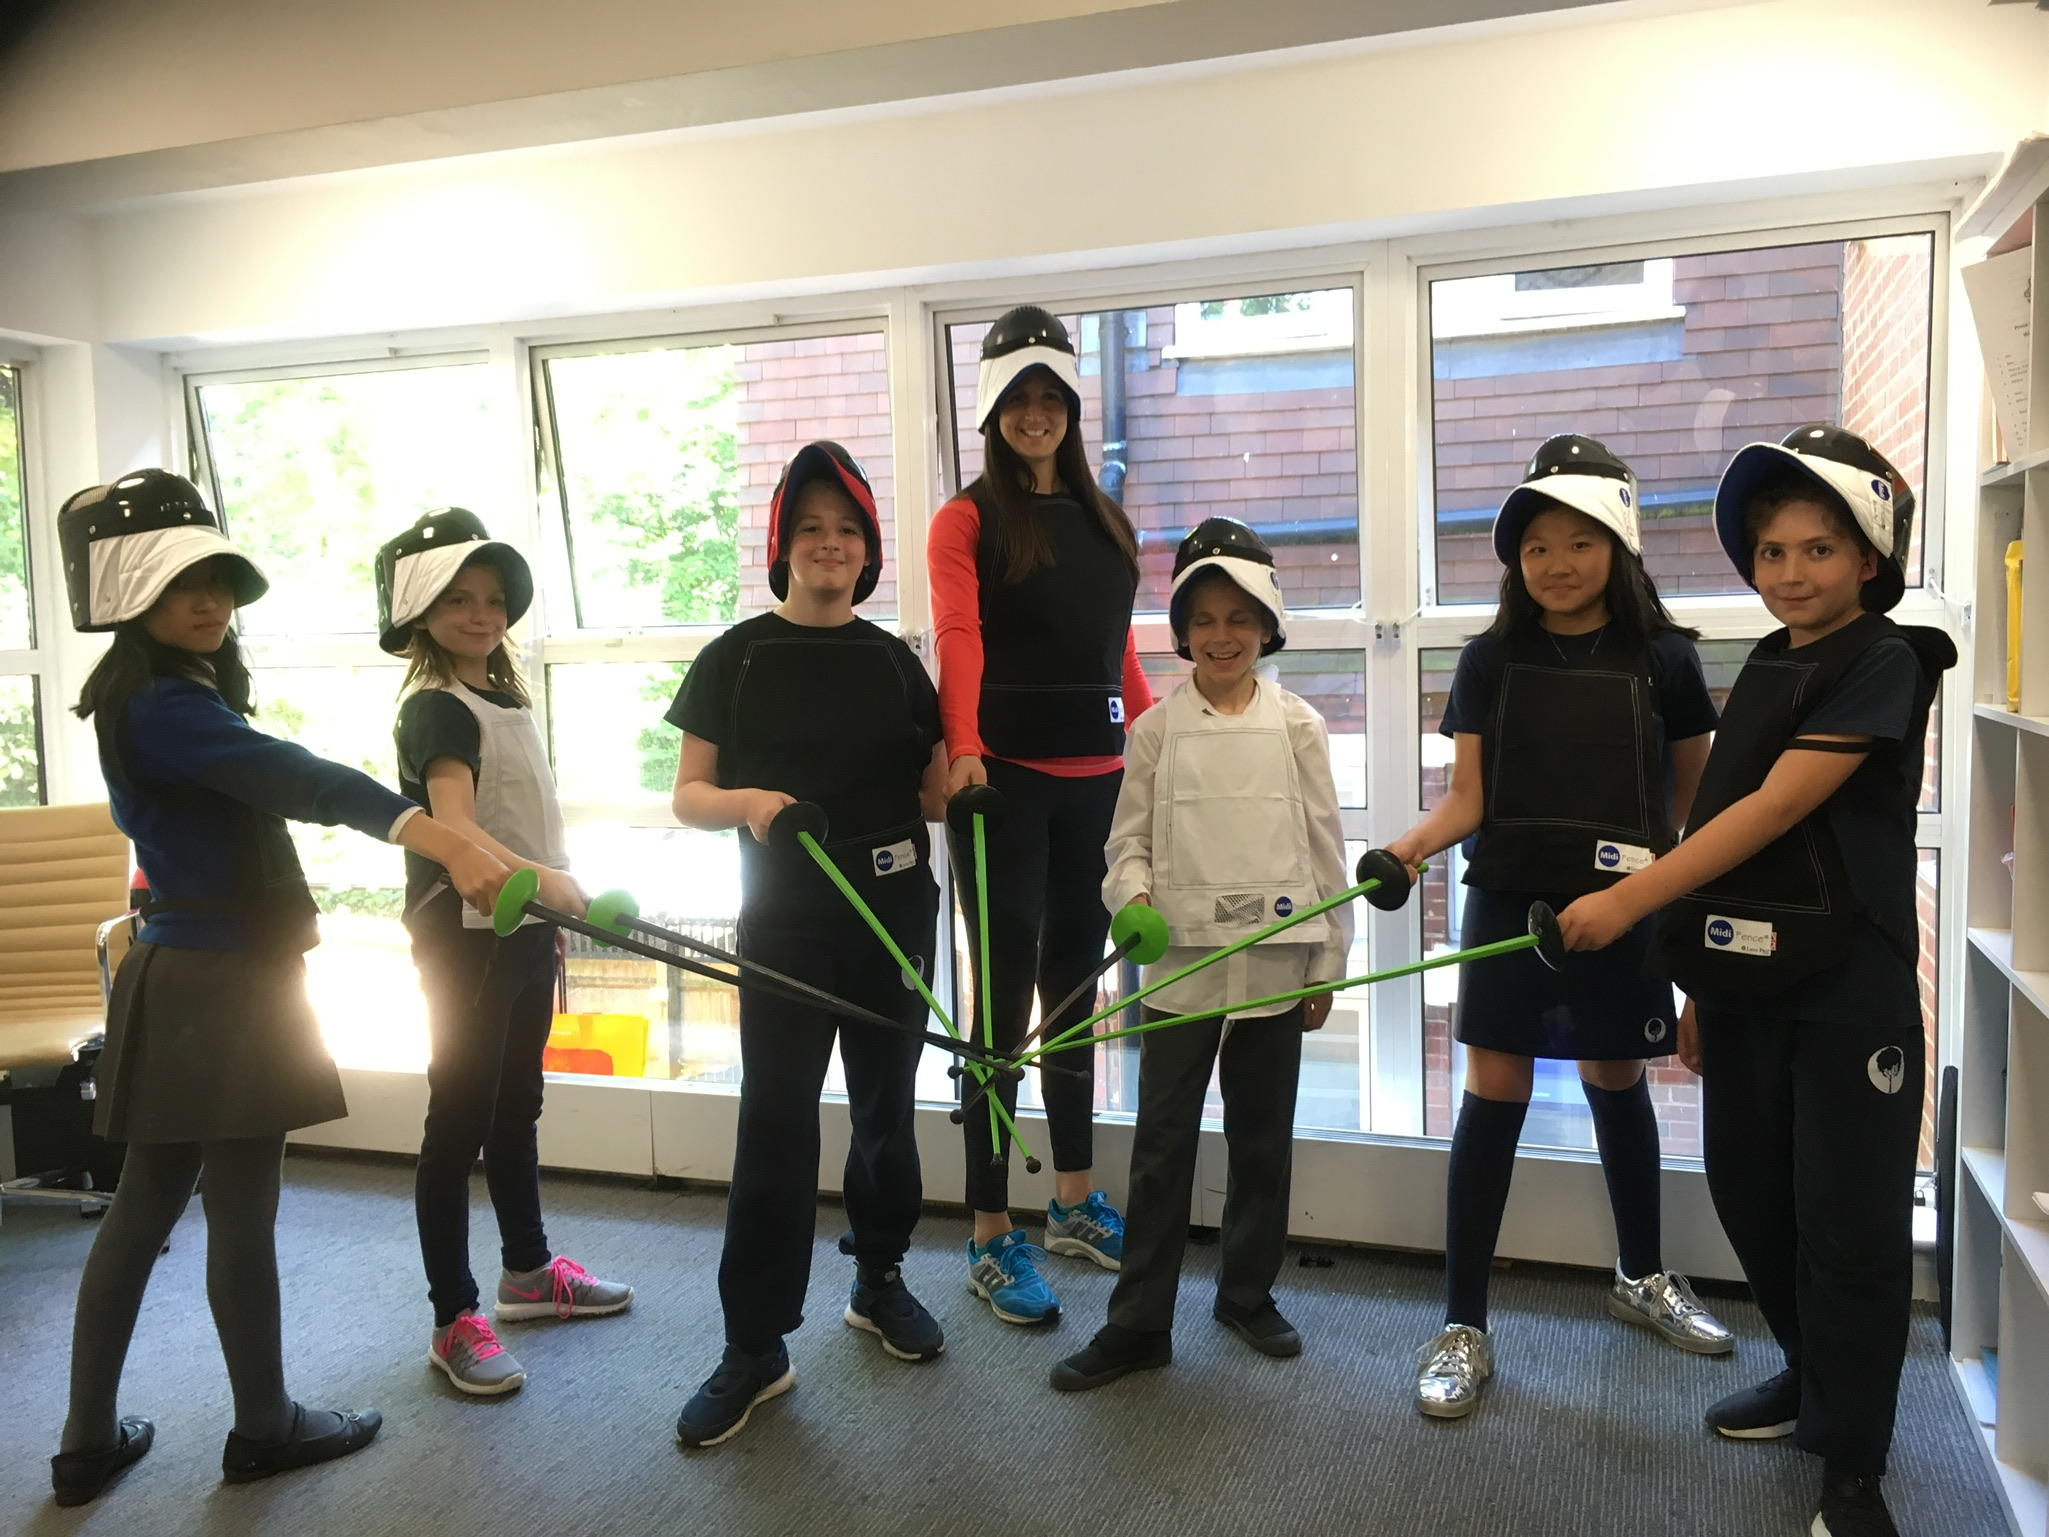 Diamond Blade Fencing Club